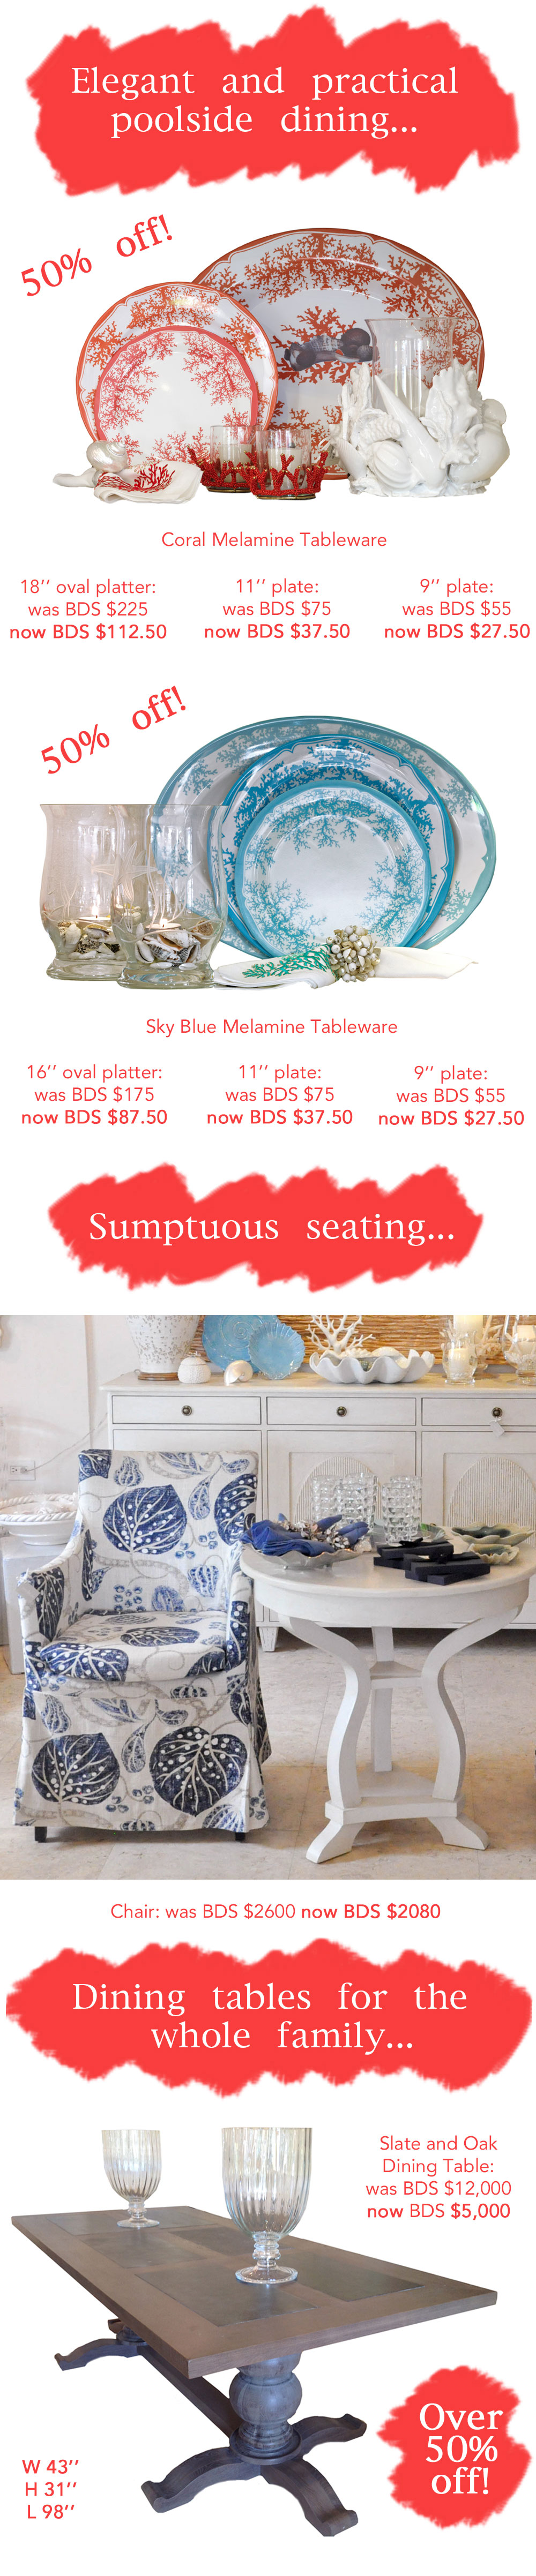 Jenny Blanc Blog - Barbados summer sale part 2